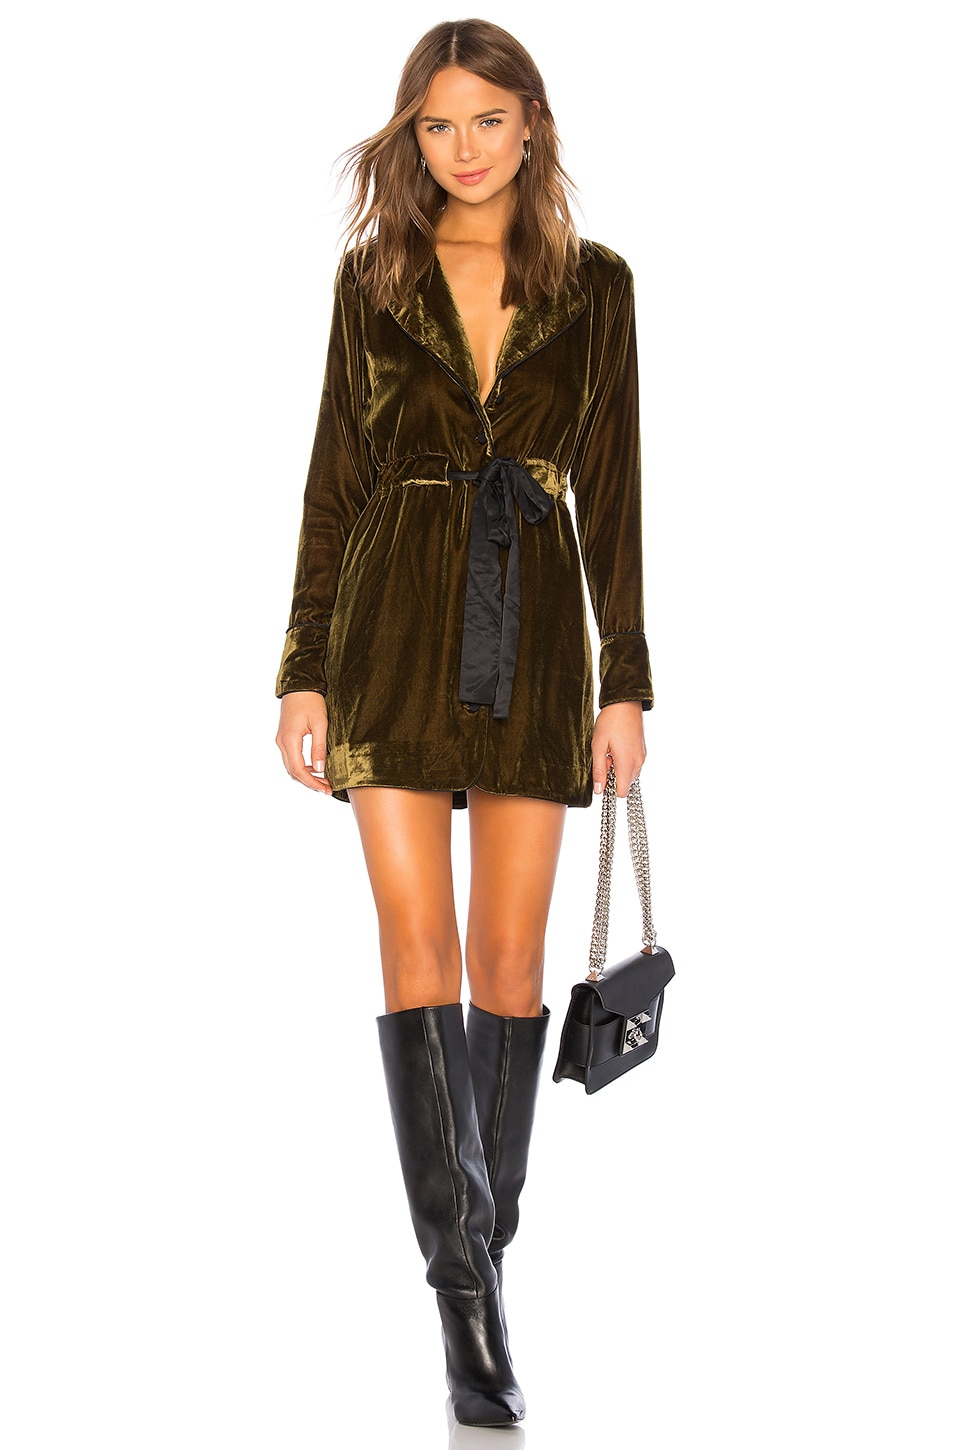 Marled x Olivia Culpo Velvet Piping Dress in Golden Olive